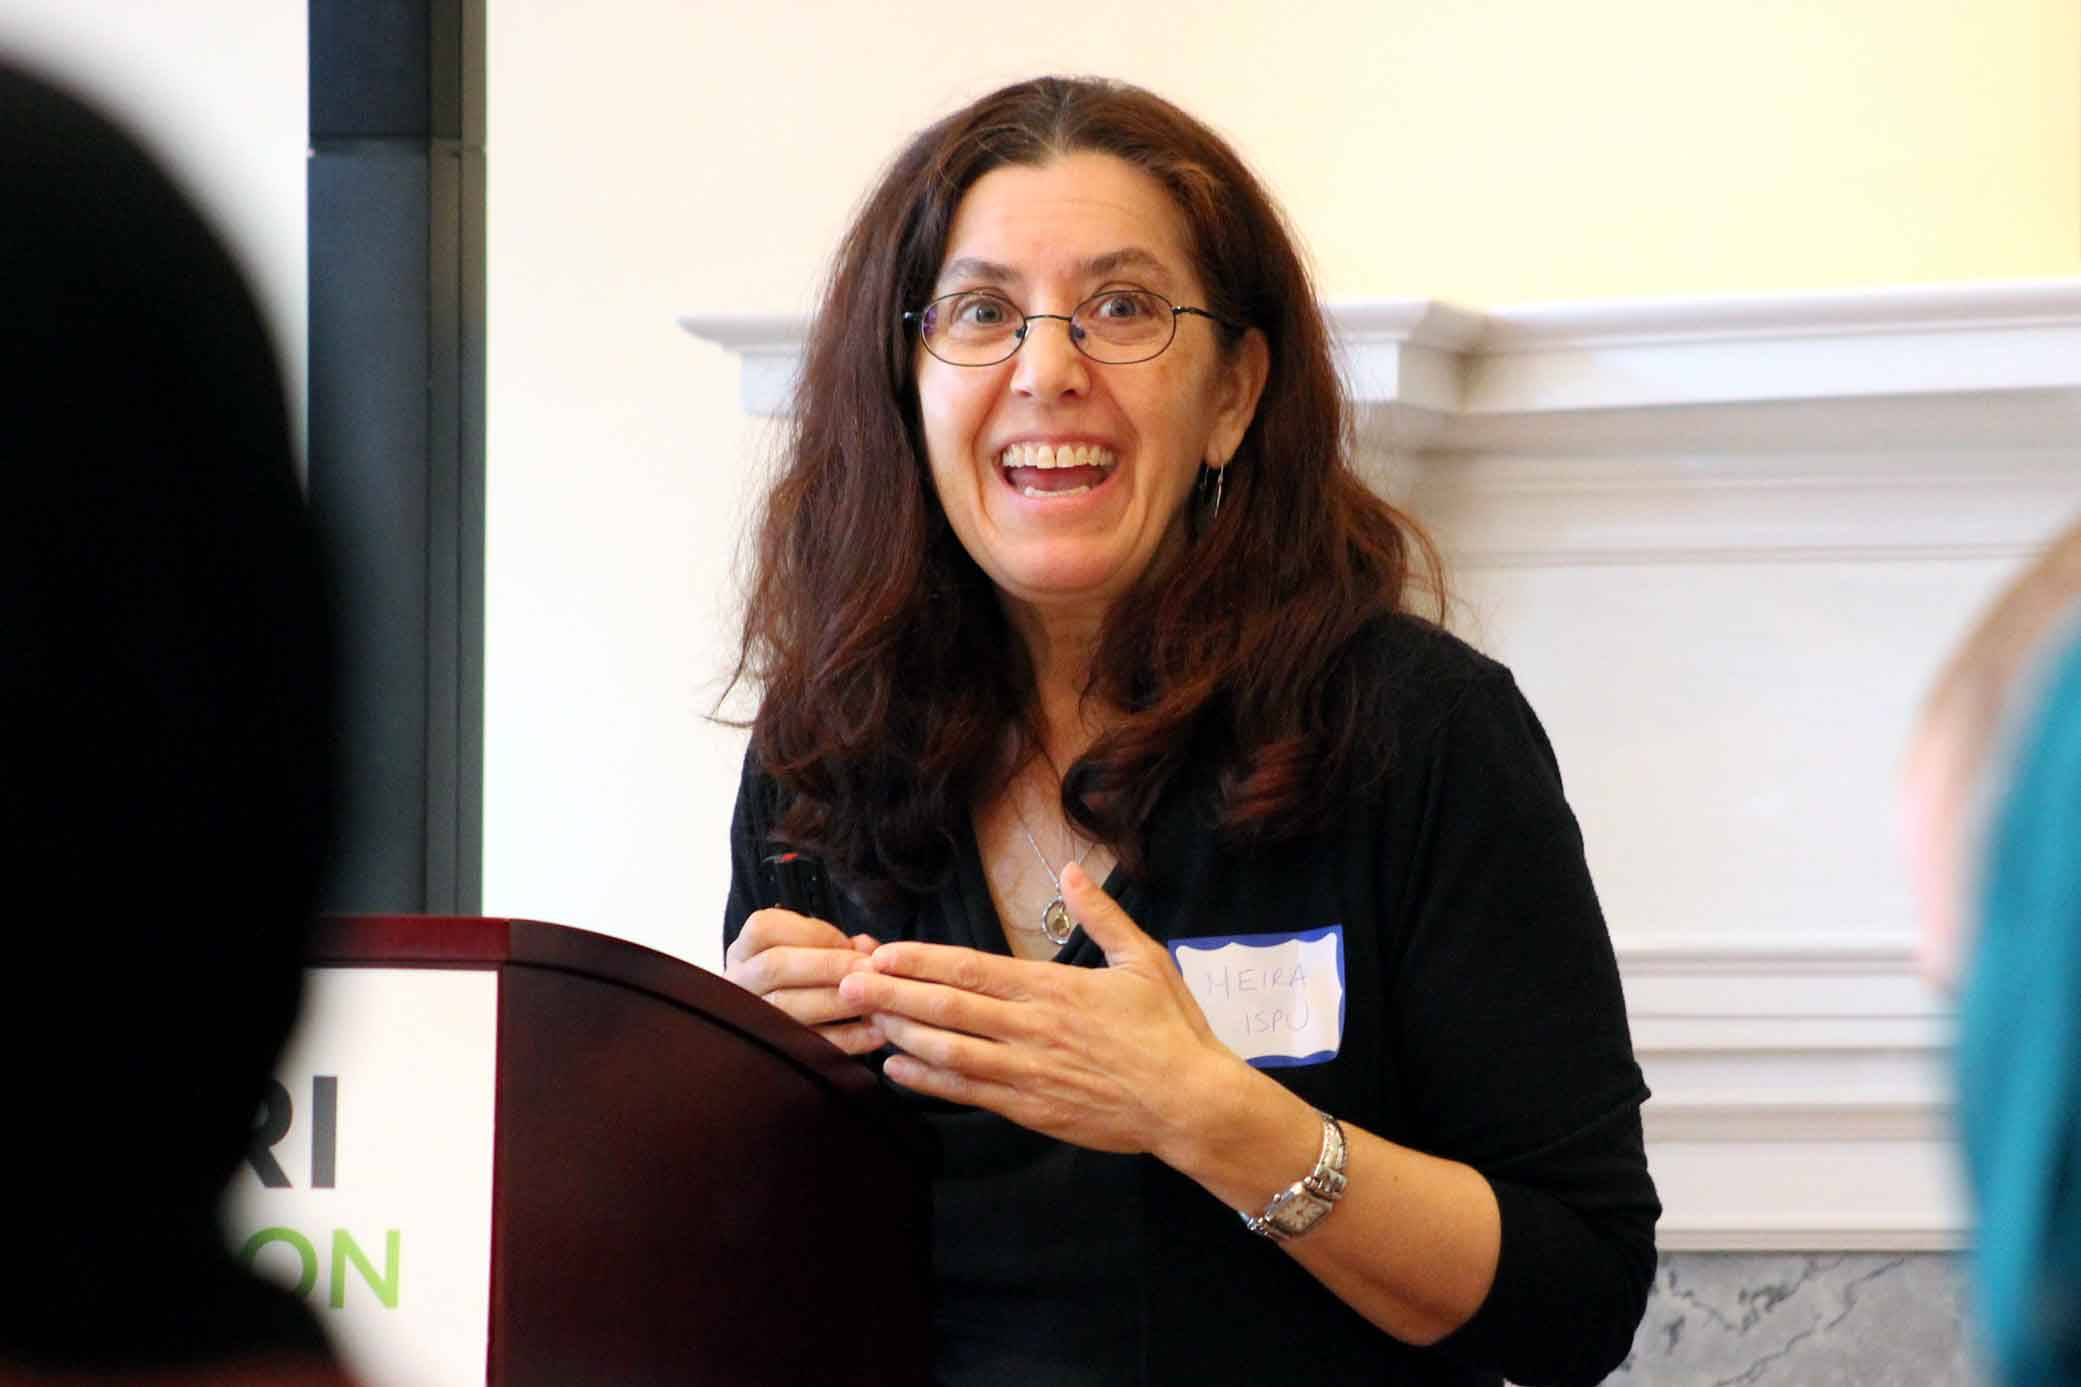 ISPU's executive director, Meira Neggaz, smiles while presenting in front of a group